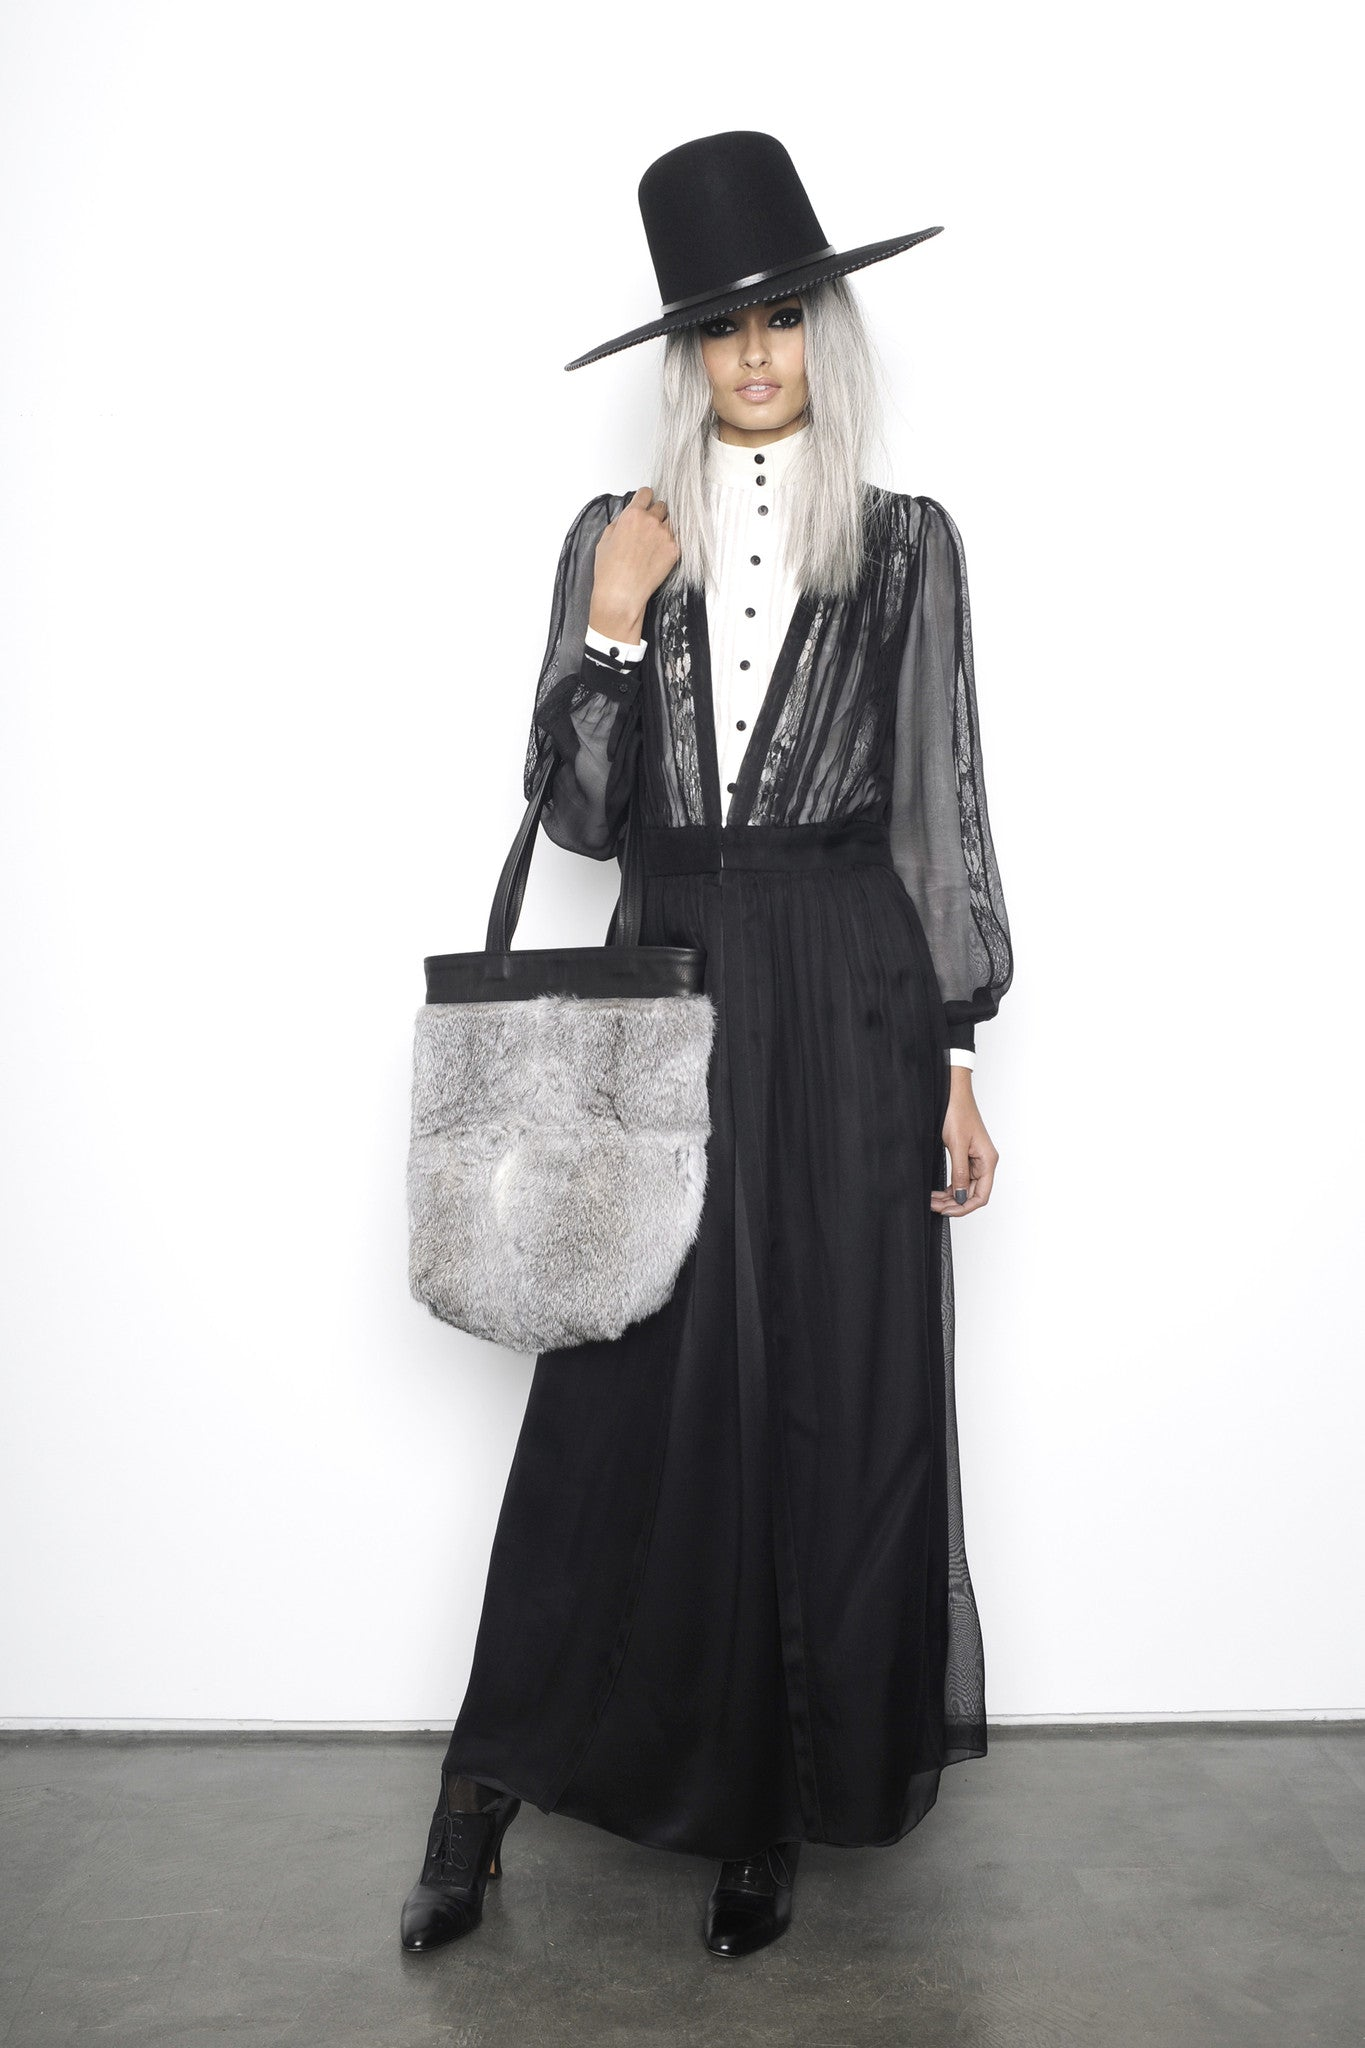 Gizele Oliveira IMG Model Gray Grey Rabbit Fur Tote Black Leather Wendy Nichol Luxury Handbag Purse Bag Designer handmade in NYC one of a kind